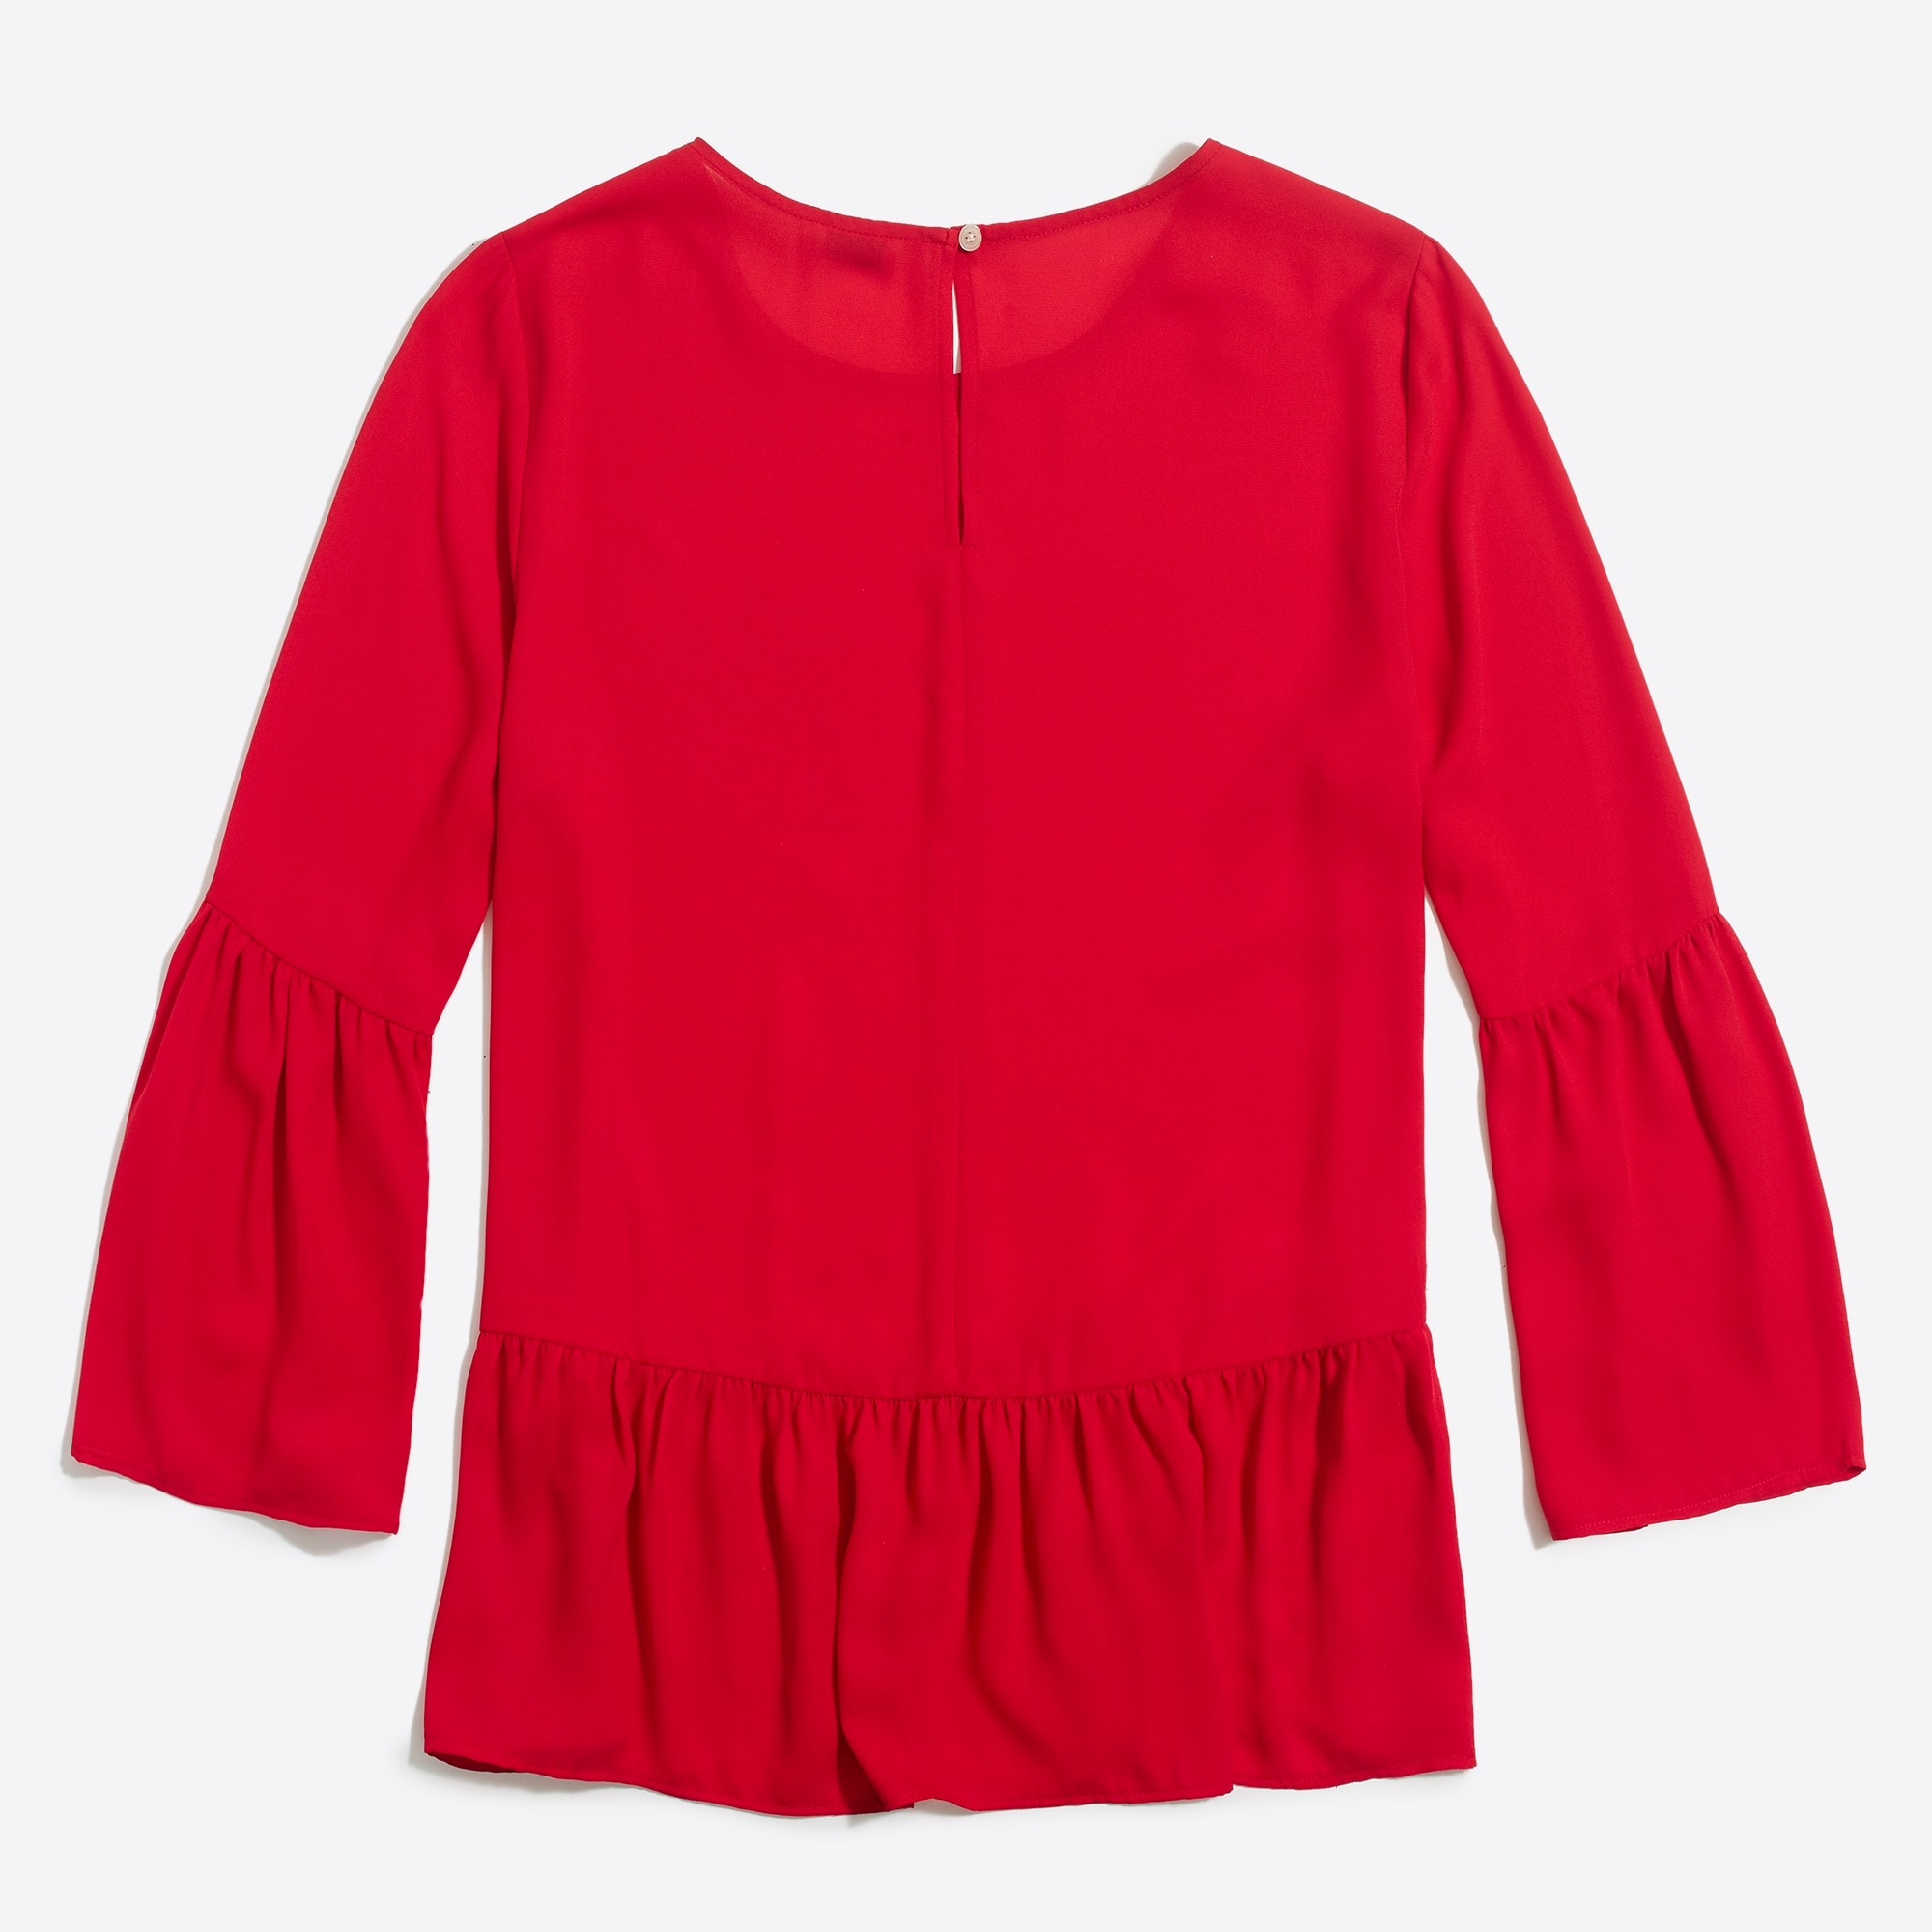 Bell-sleeve peplum top